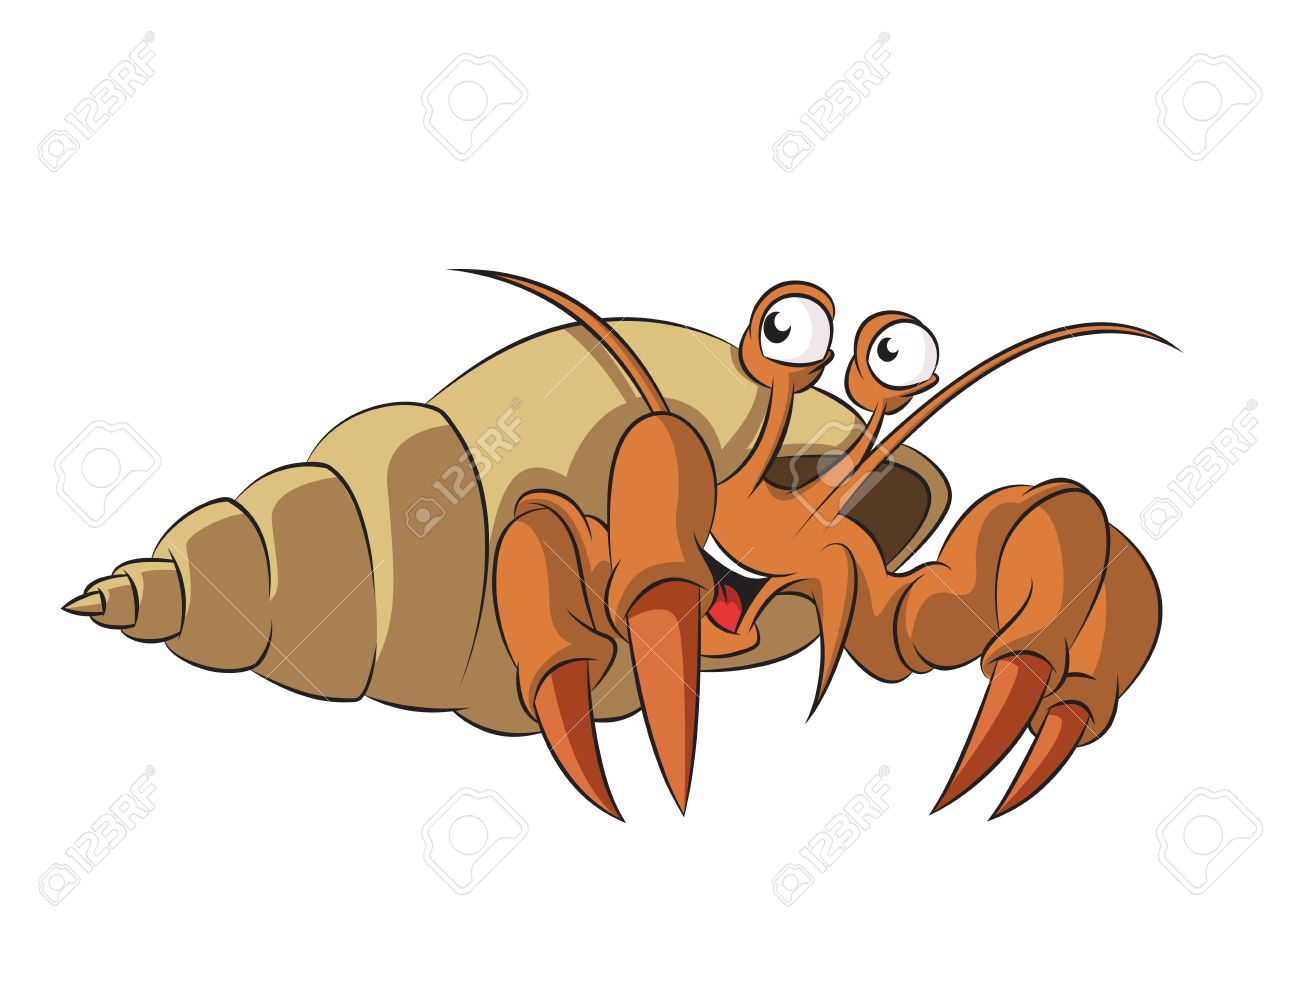 image of funny cartoon smiling hermit crab Stock Vector - 21765562